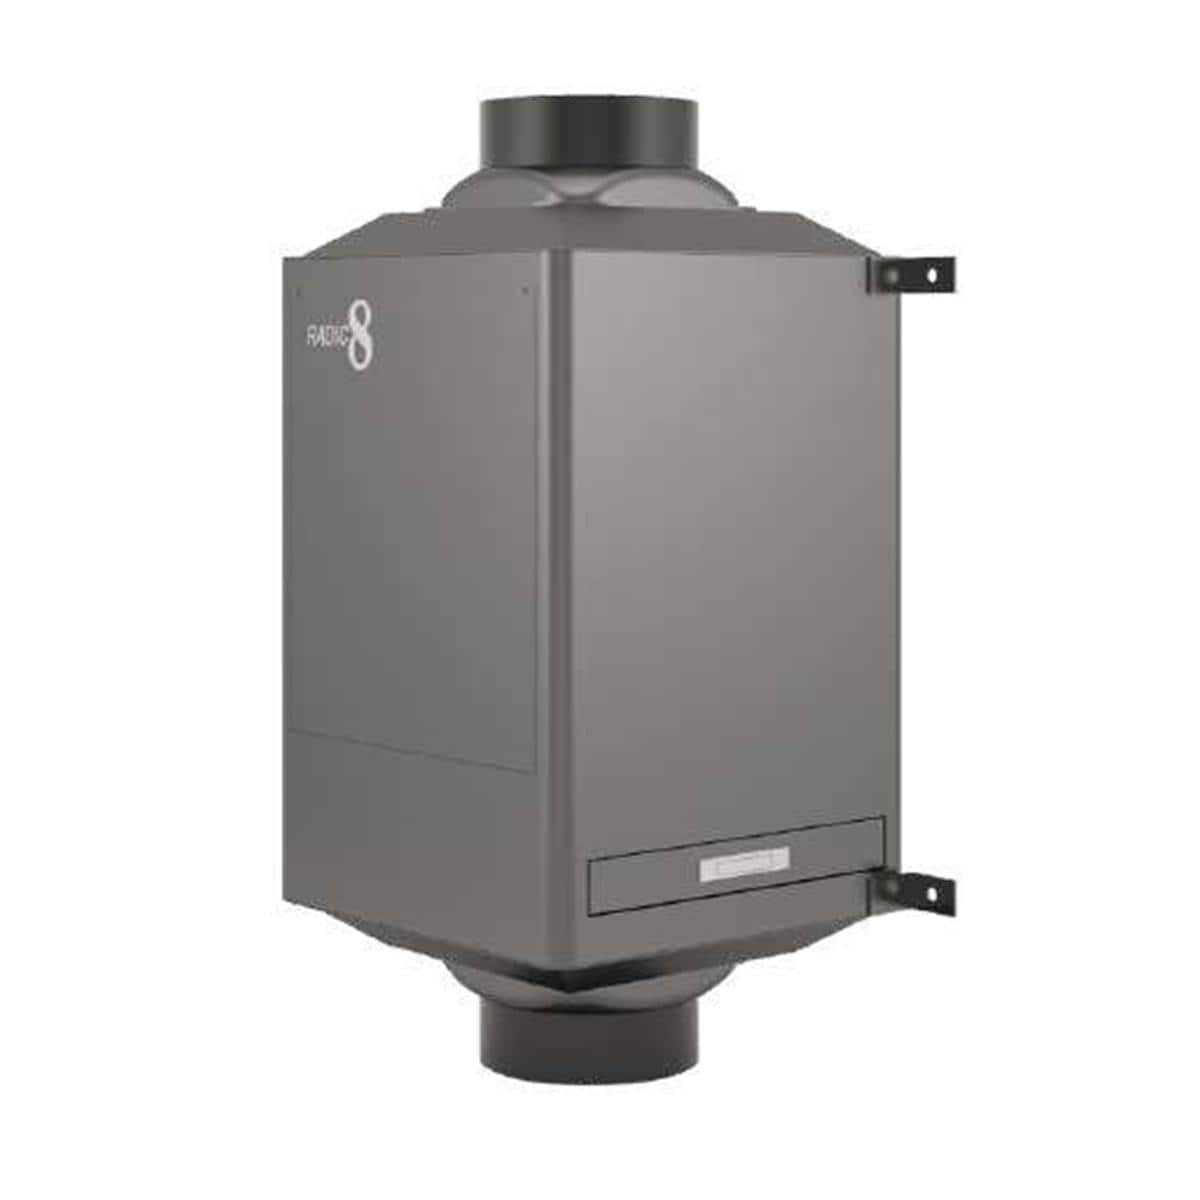 IAQ Inline Unit - Complements existing ventilation systems, including Hosptial wards & Carehomes